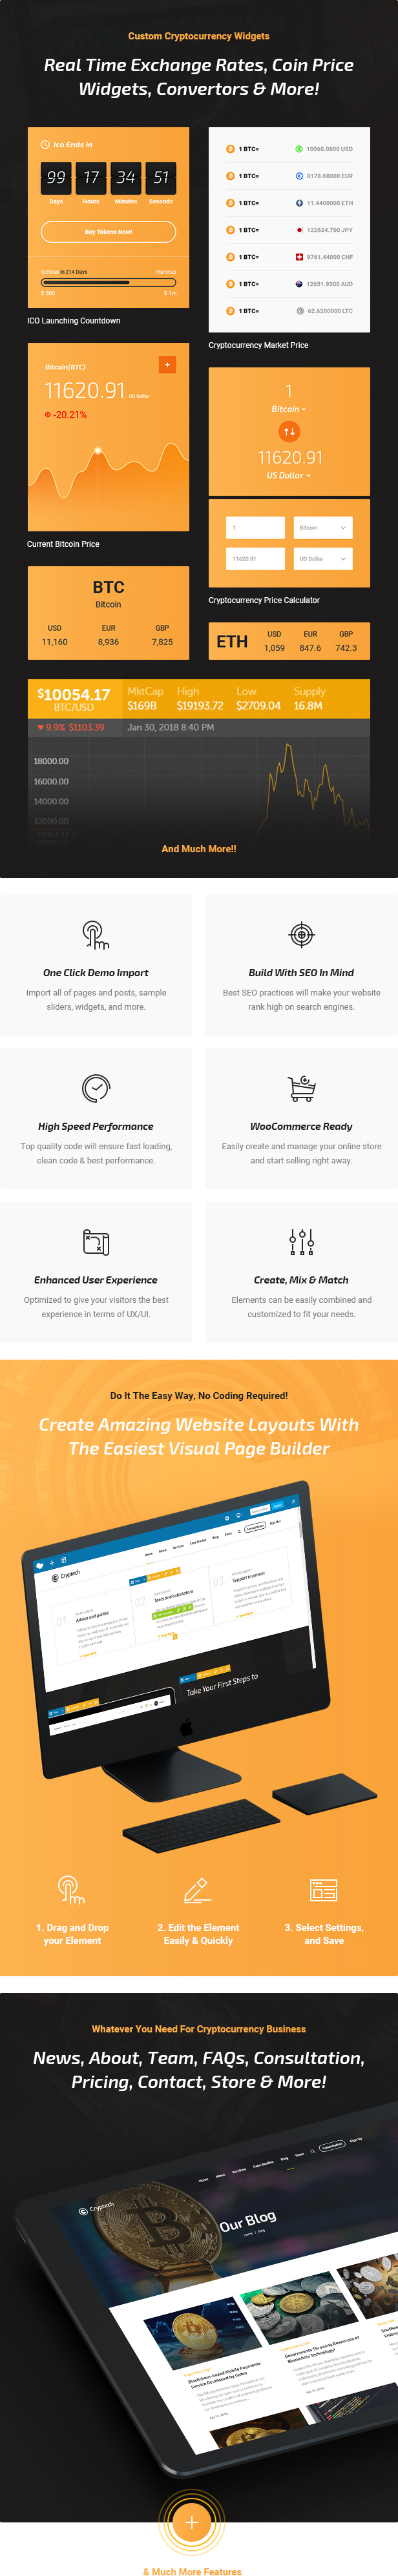 Cryptech - ICO and Cryptocurrency WordPress Theme - 6